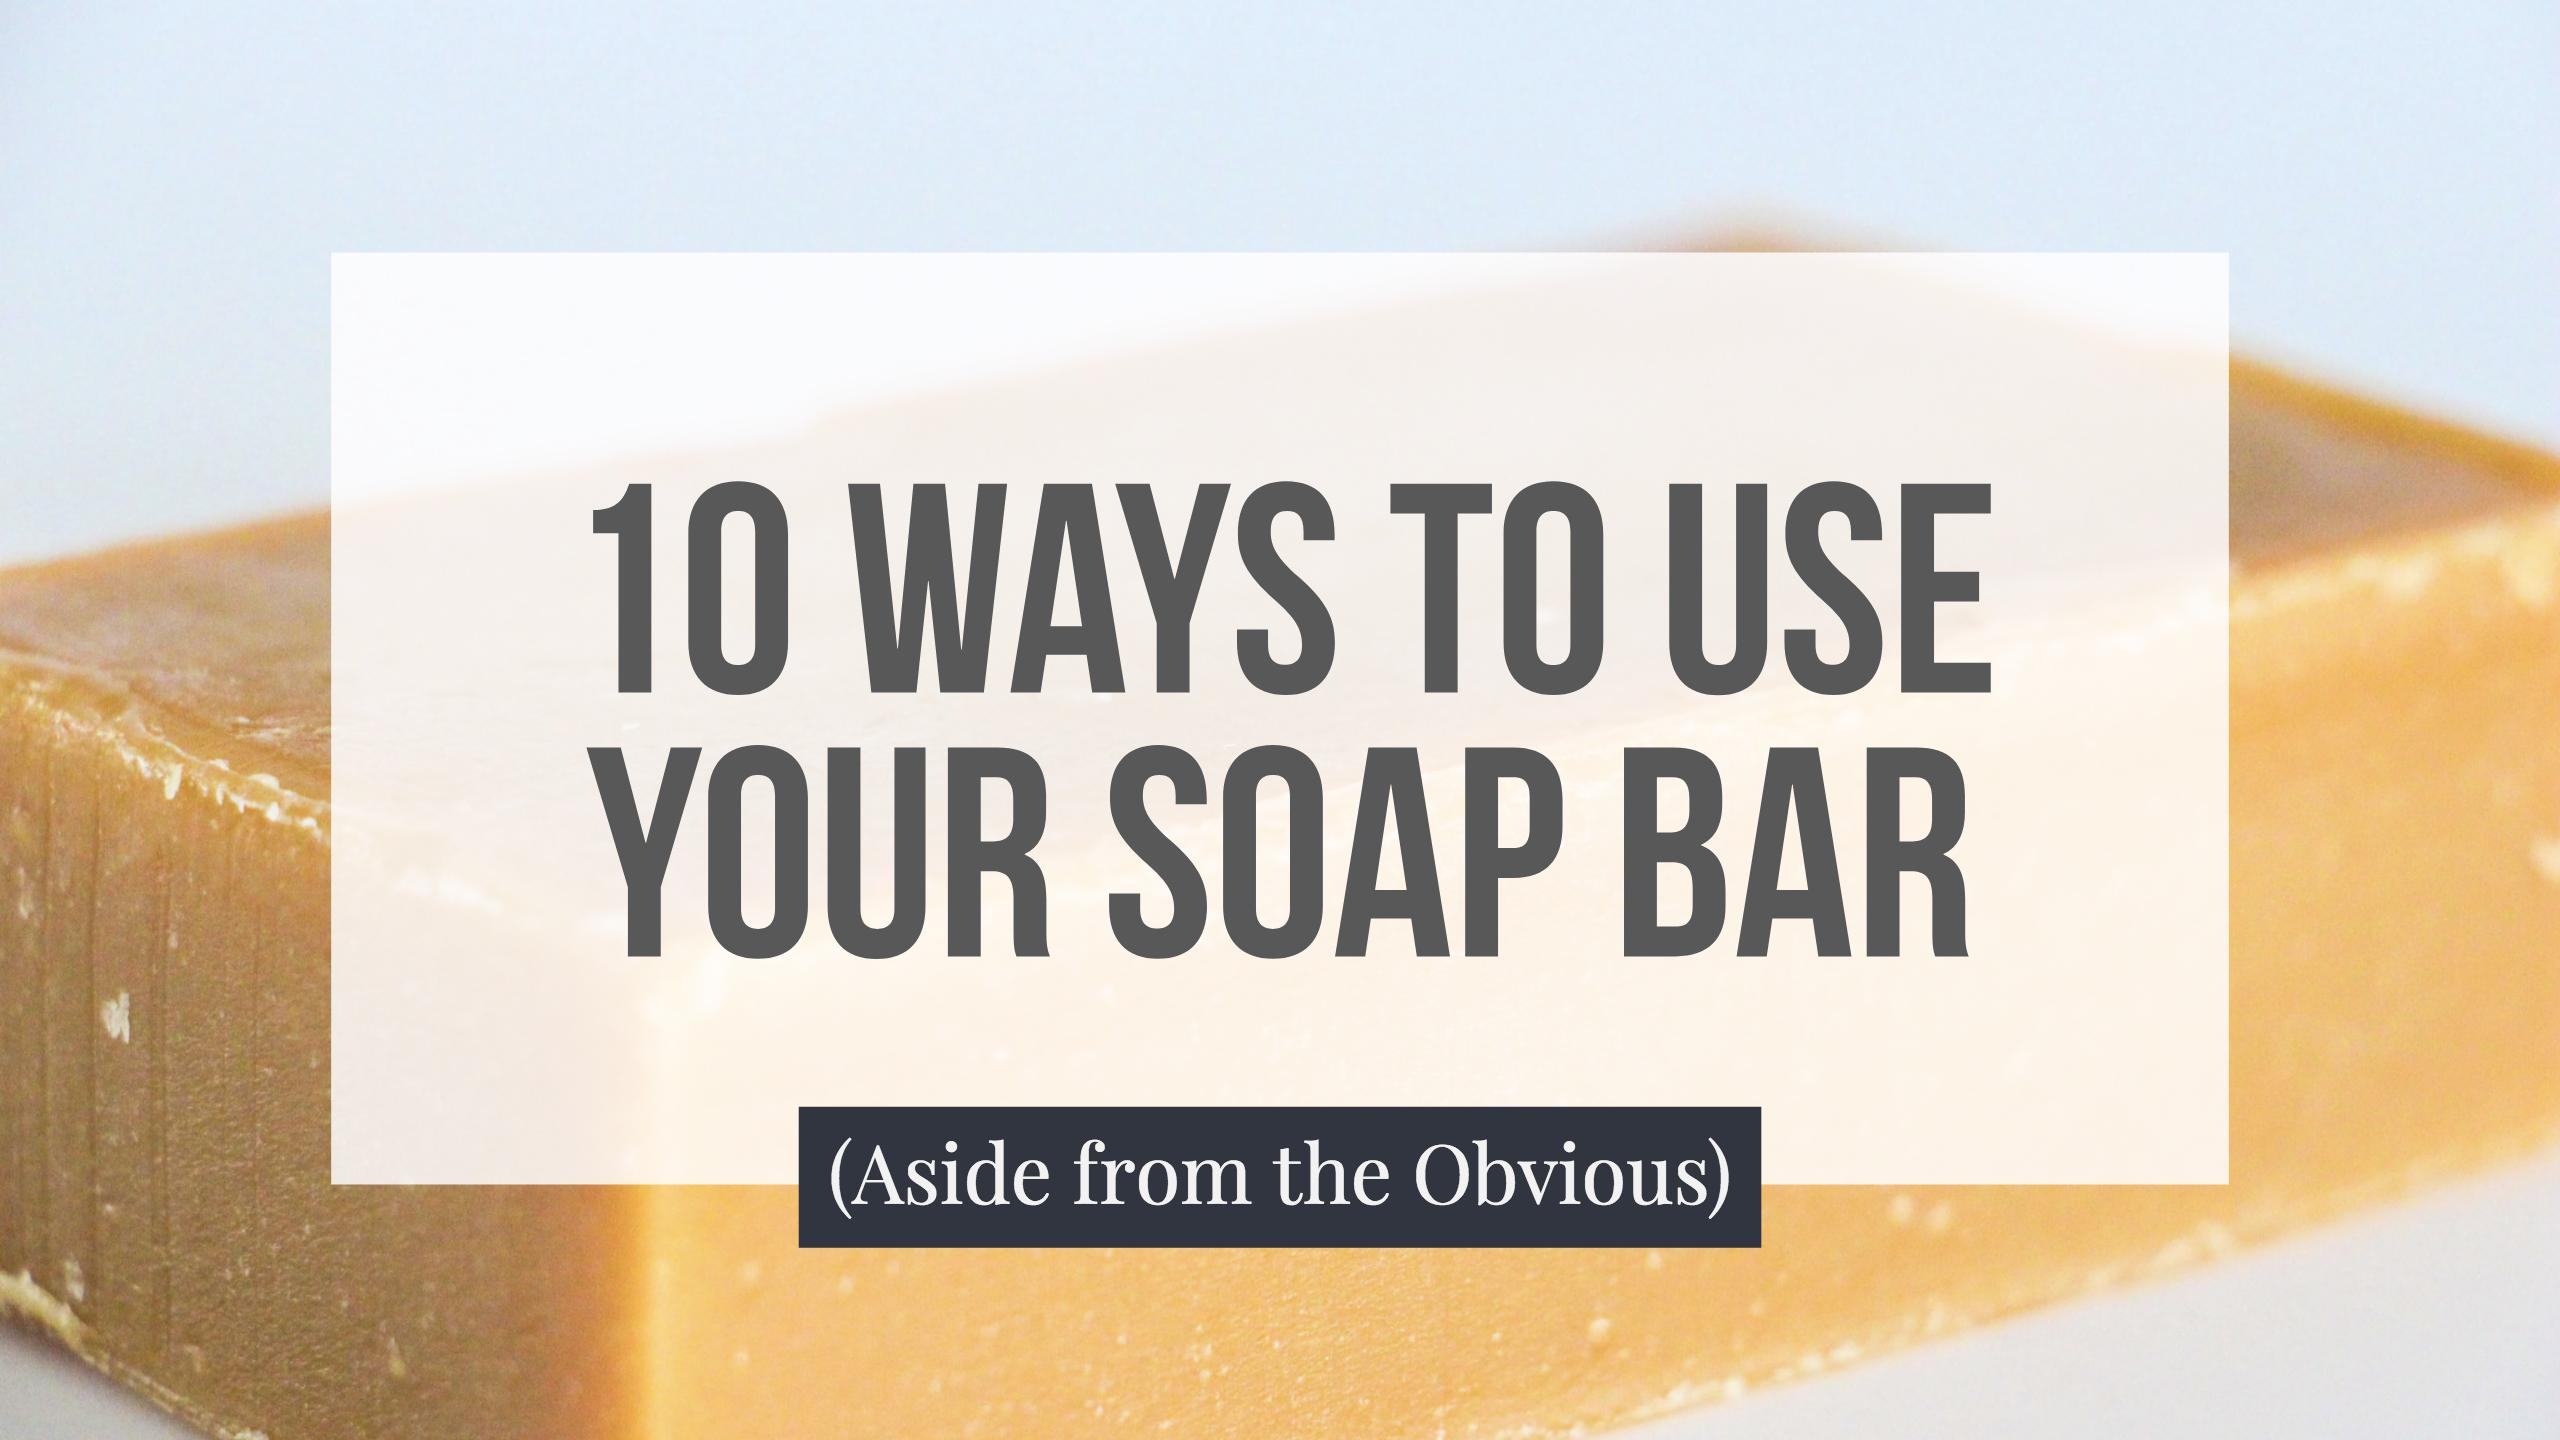 10 Ways to Use Your Soap Bar (Aside from the Obvious)